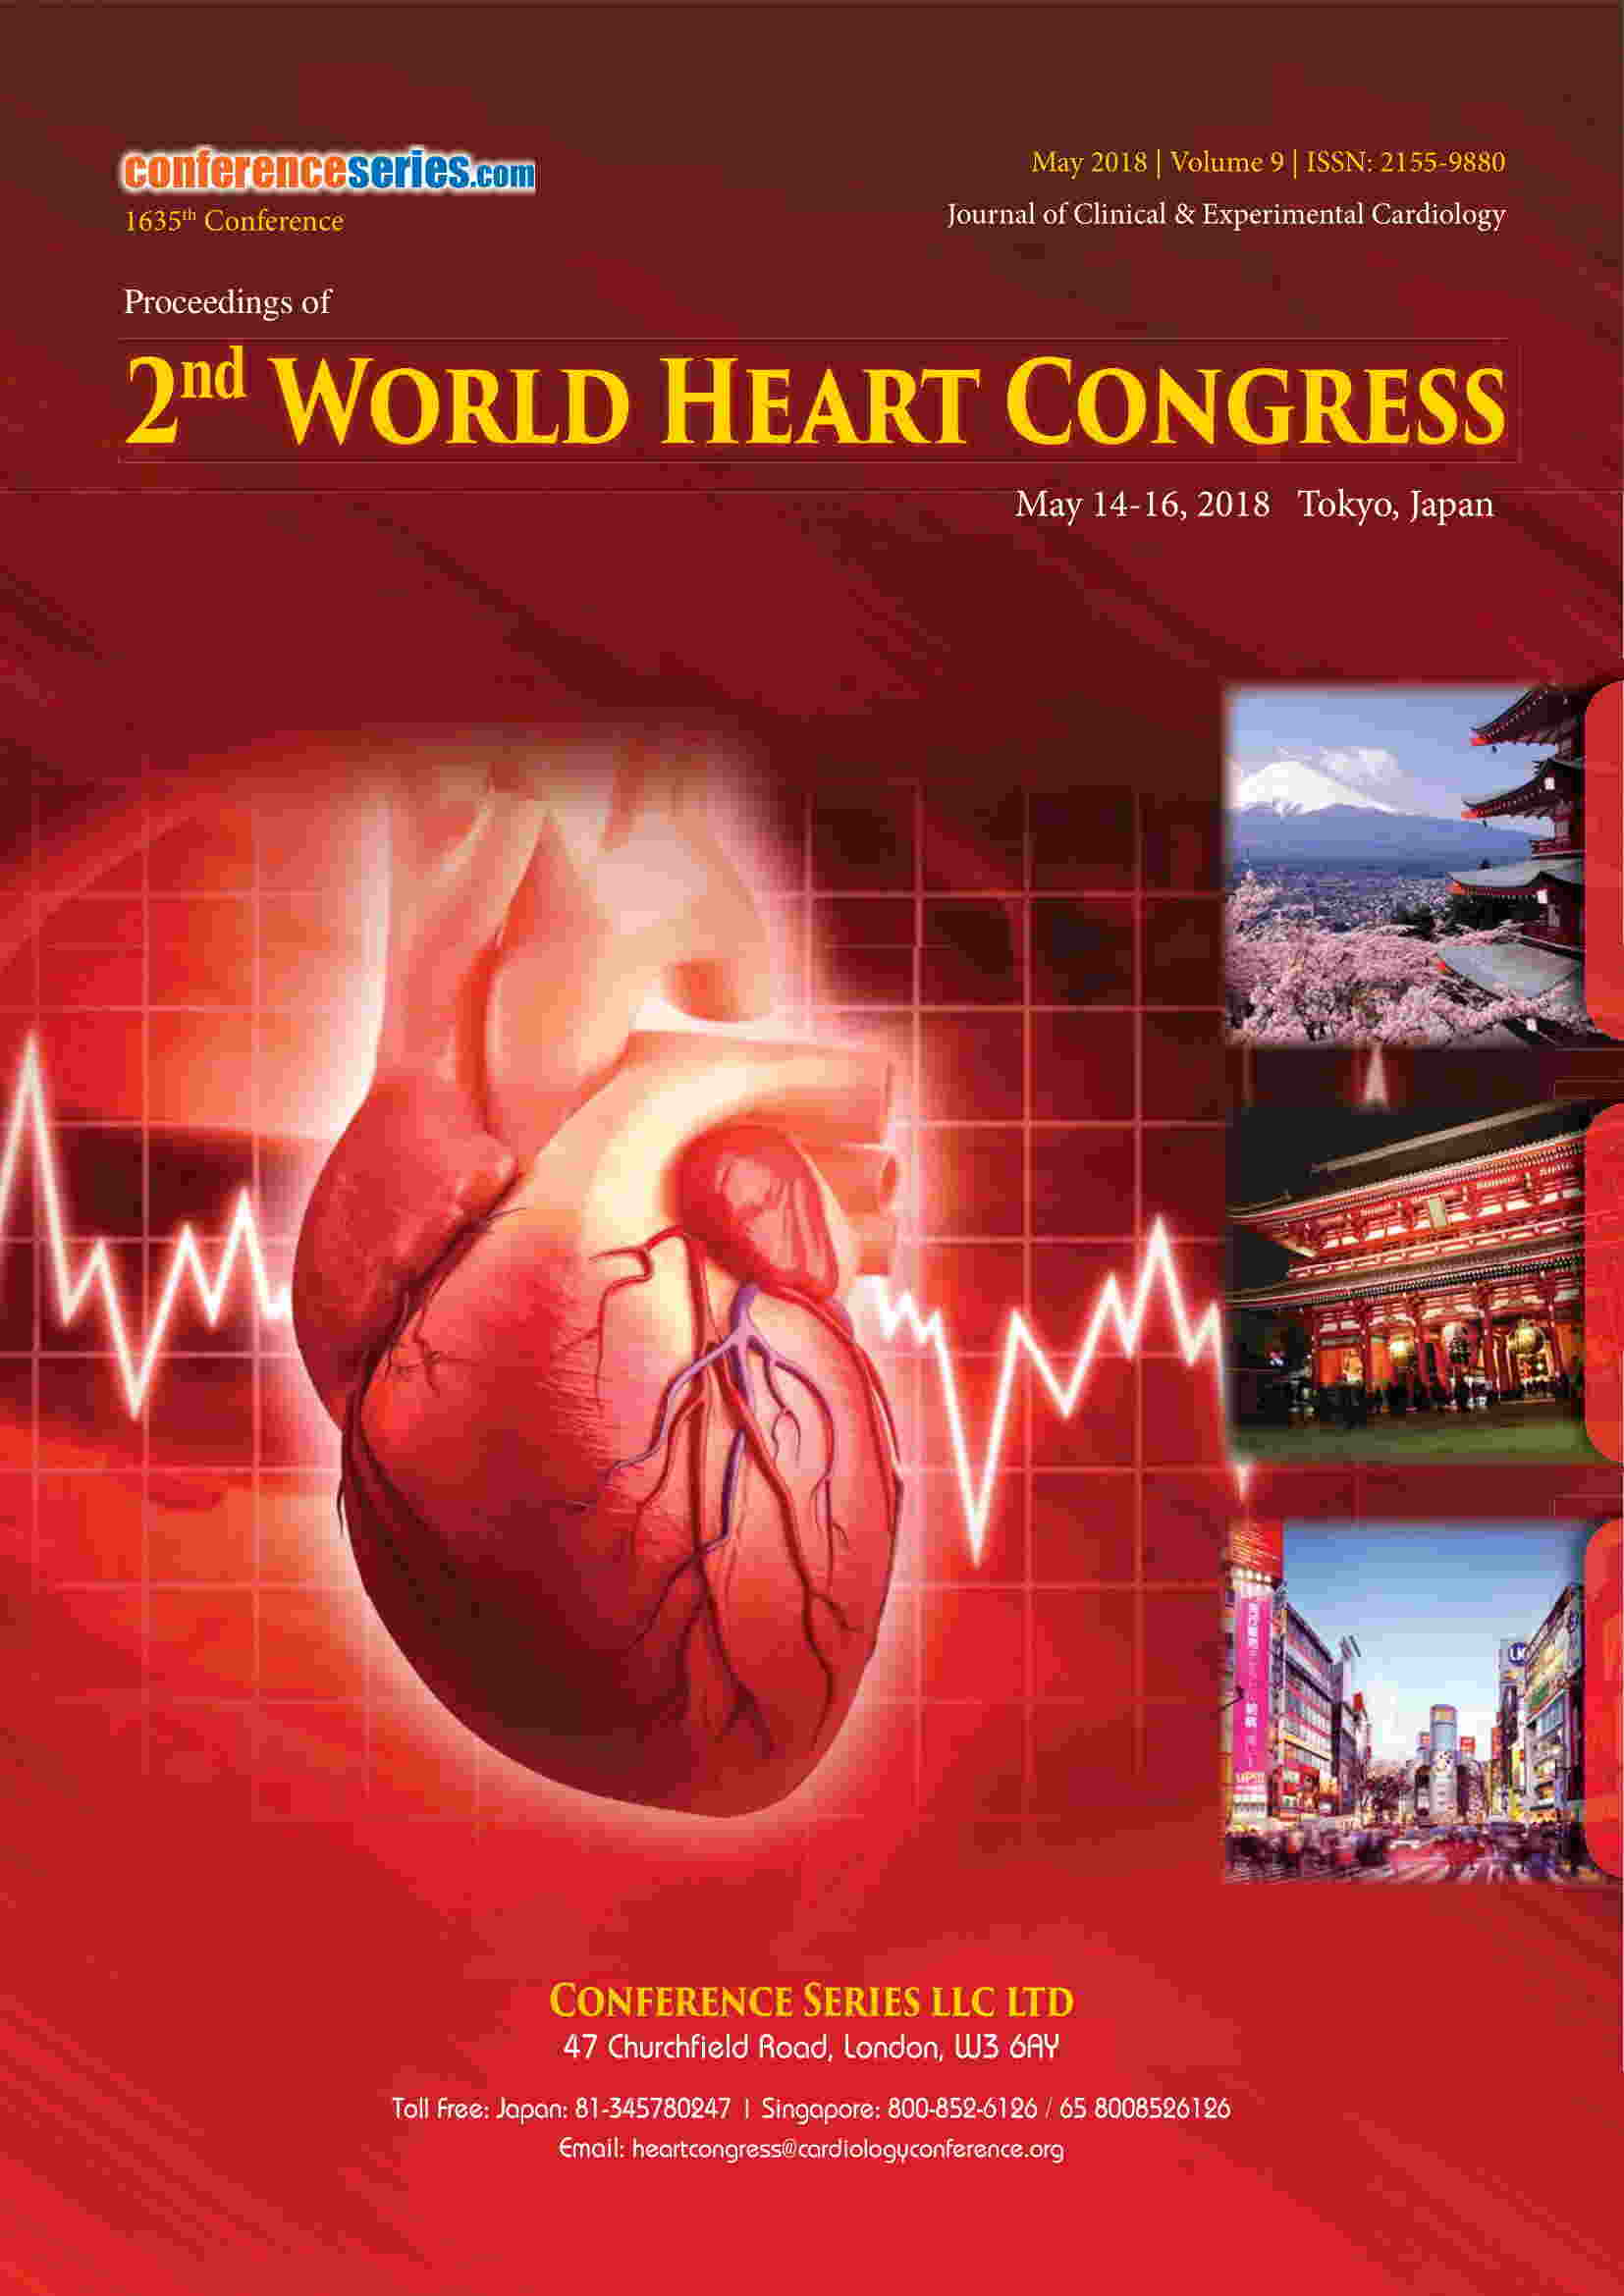 https://www.omicsonline.org/ArchiveJCEC/heart-congress-2018-proceedings.php